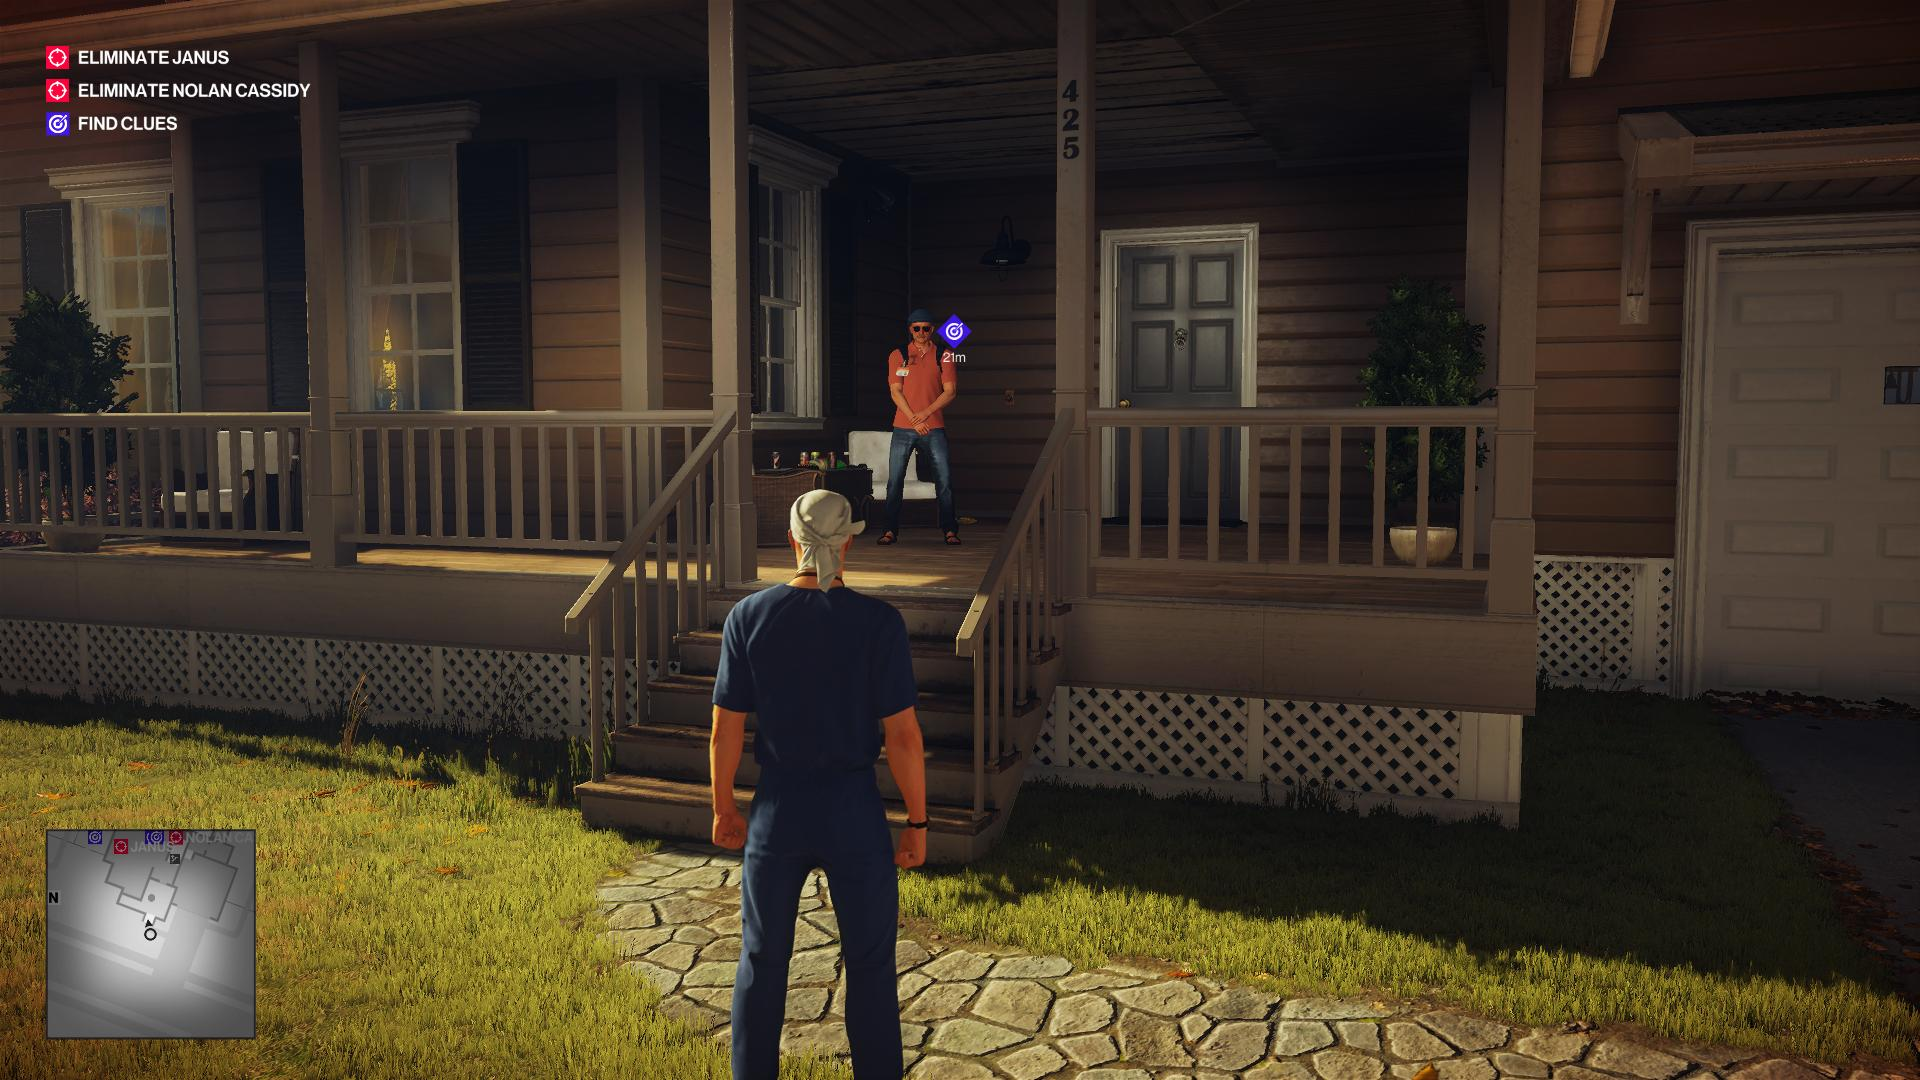 Agent 47 in a bandana and nurse scrubs, approaching the porch of a man in a pink shirt. He's standing rather awkwardly on guard.